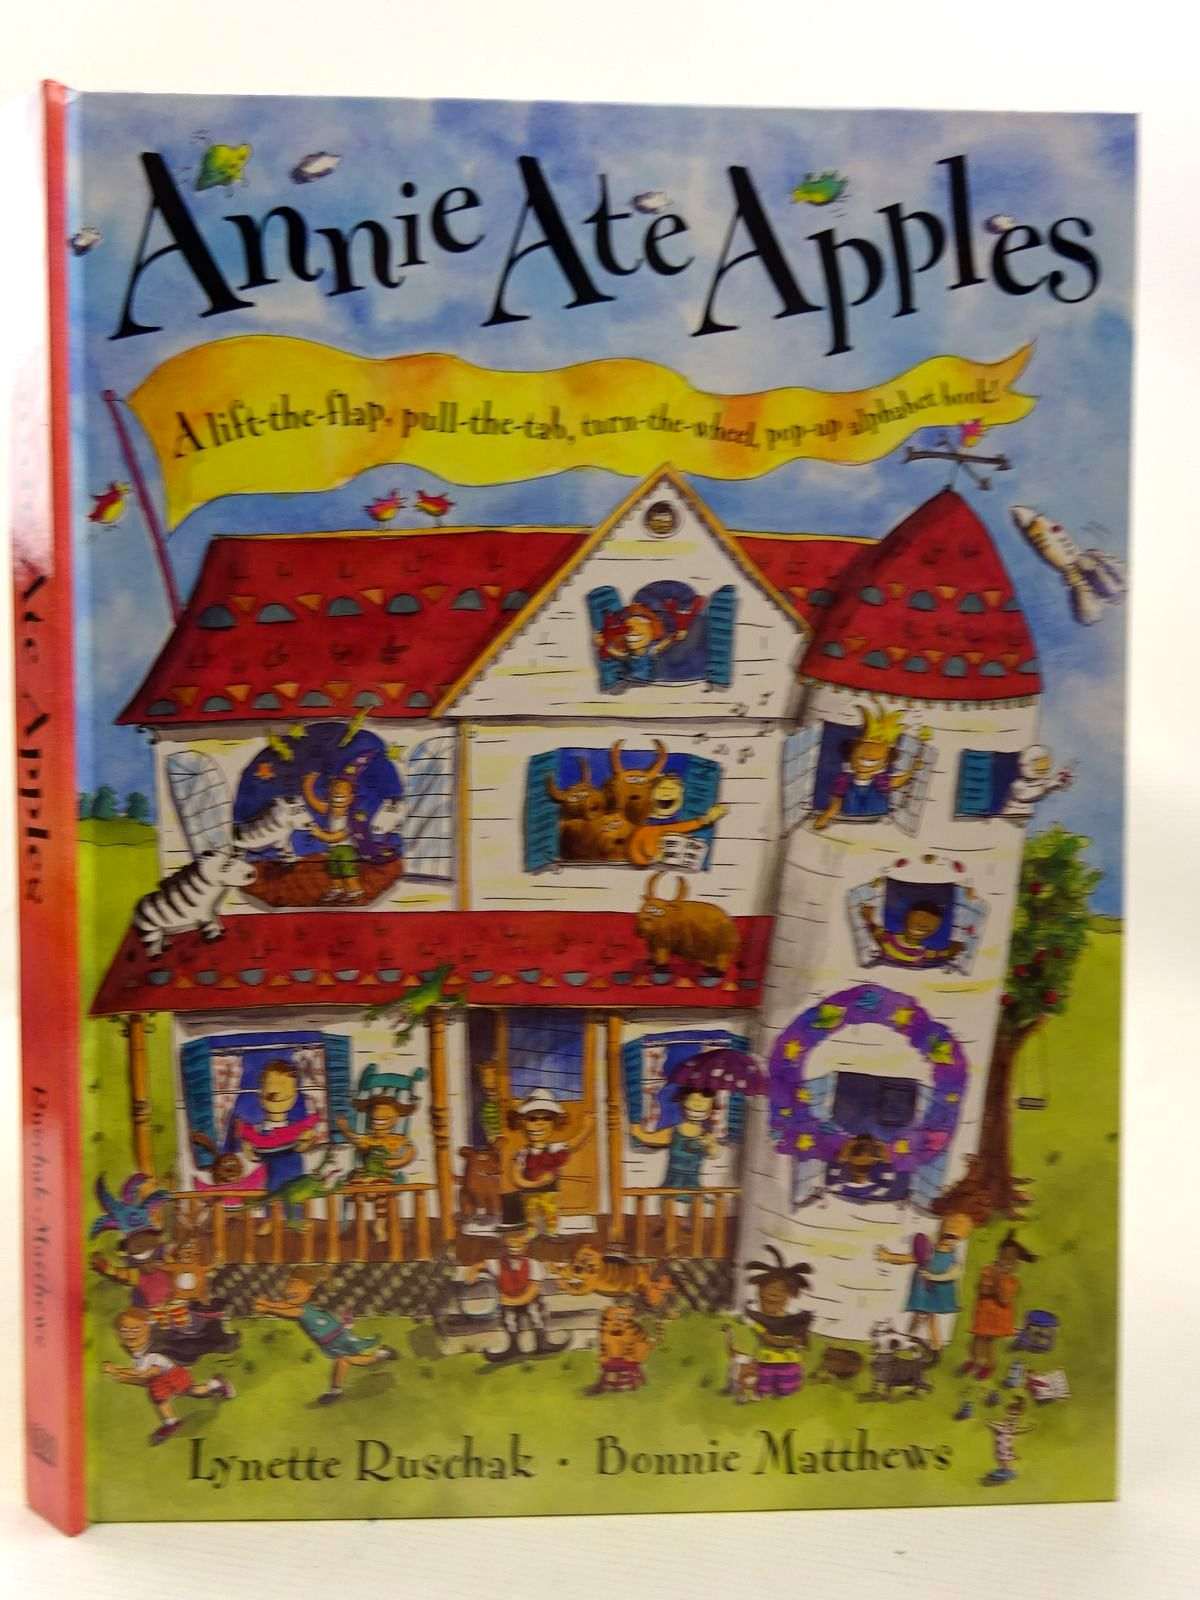 Photo of ANNIE ATE APPLES written by Ruschak, Lynette illustrated by Matthews, Bonnie published by Dorling Kindersley (STOCK CODE: 2126594)  for sale by Stella & Rose's Books